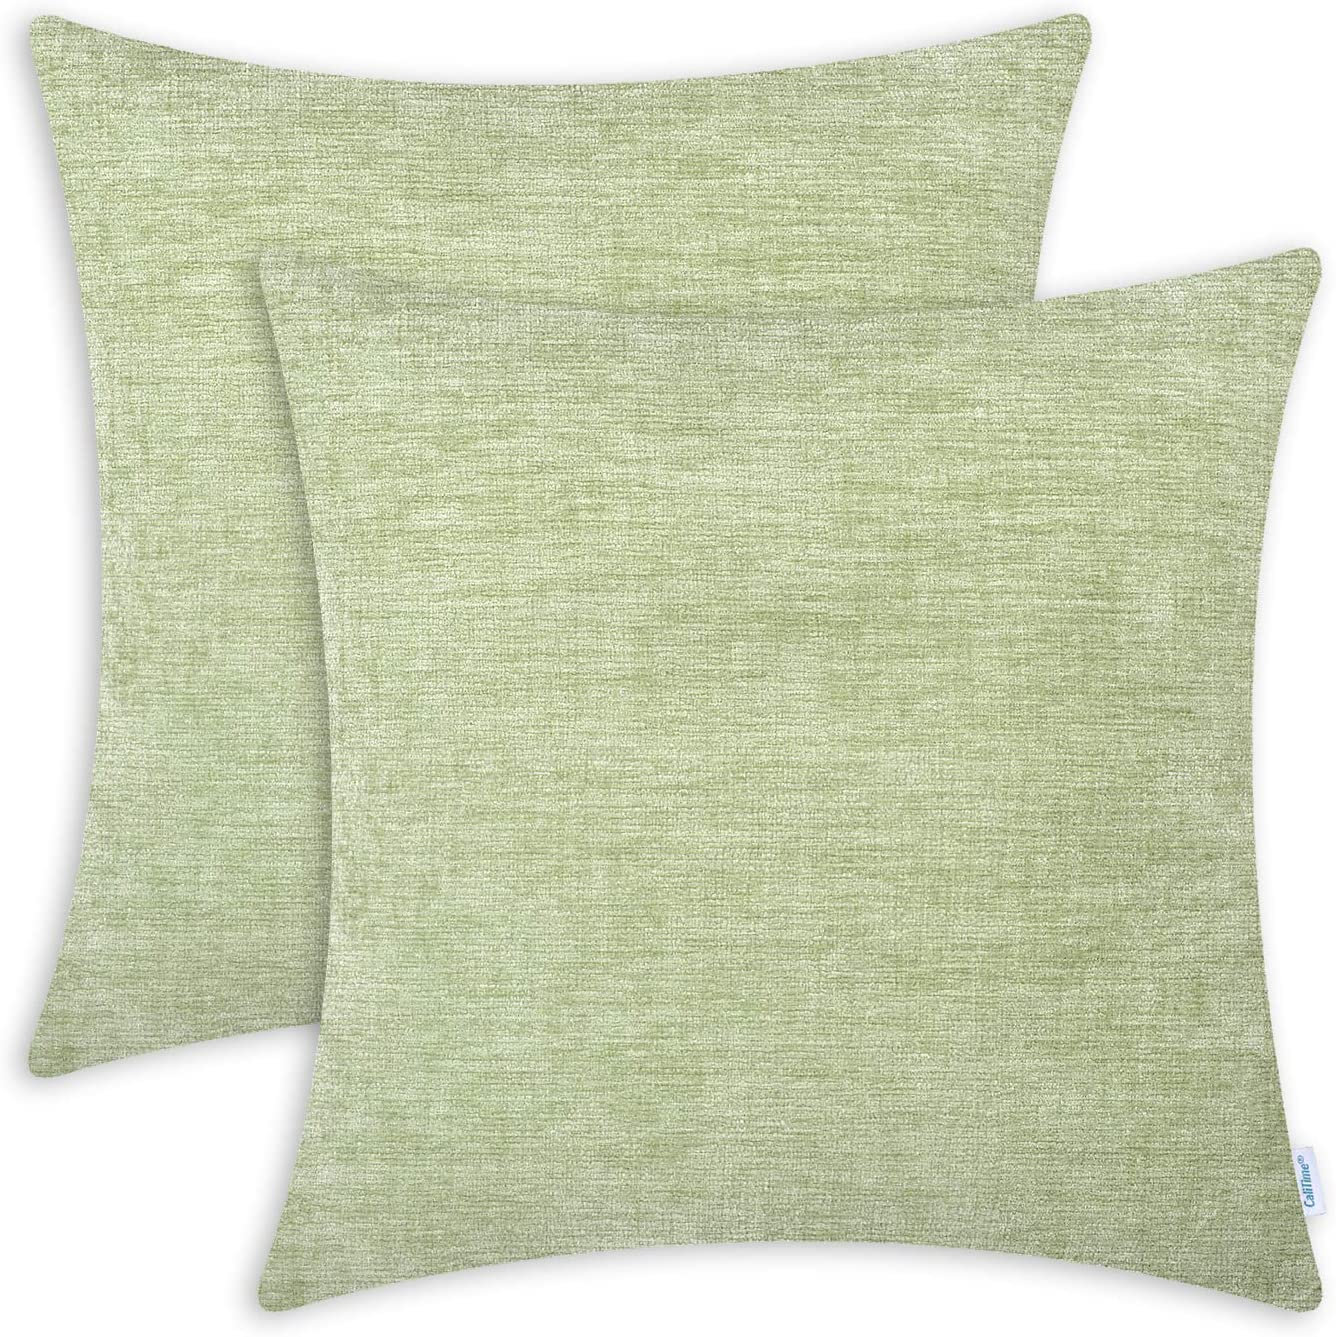 CaliTime Pack of 2 Cozy Throw Pillow Covers Cases for Couch Sofa Home Decoration Solid Dyed Soft Chenille 18 X 18 Inches Sage: Home & Kitchen